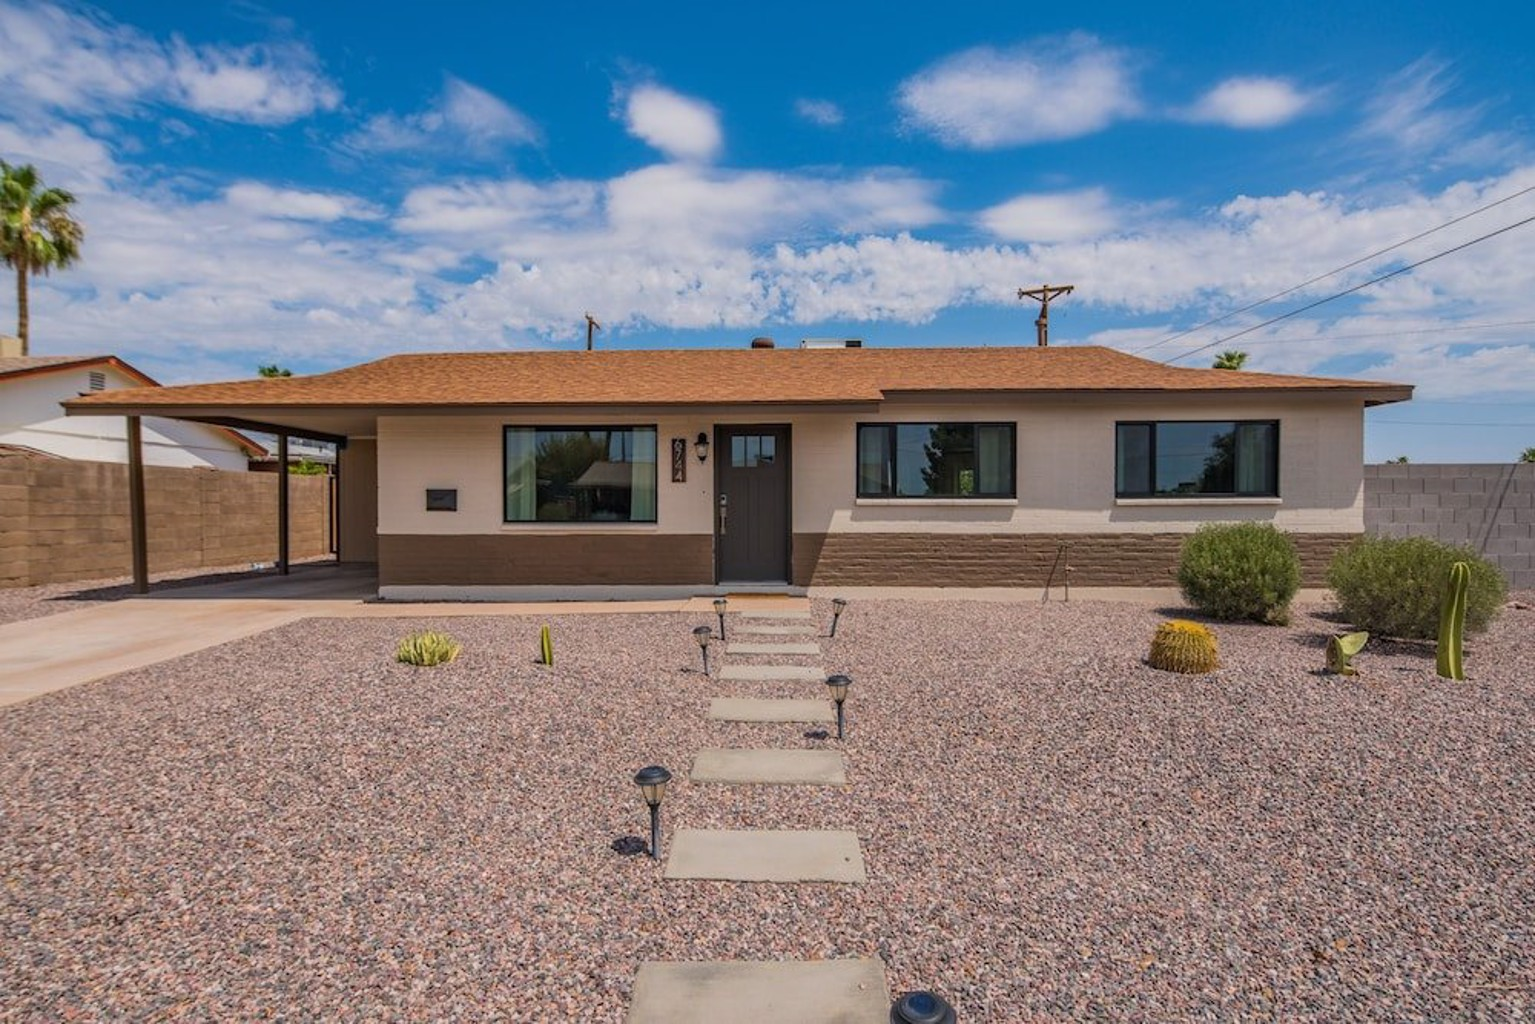 3BR Home Papago Park by WanderJaunt